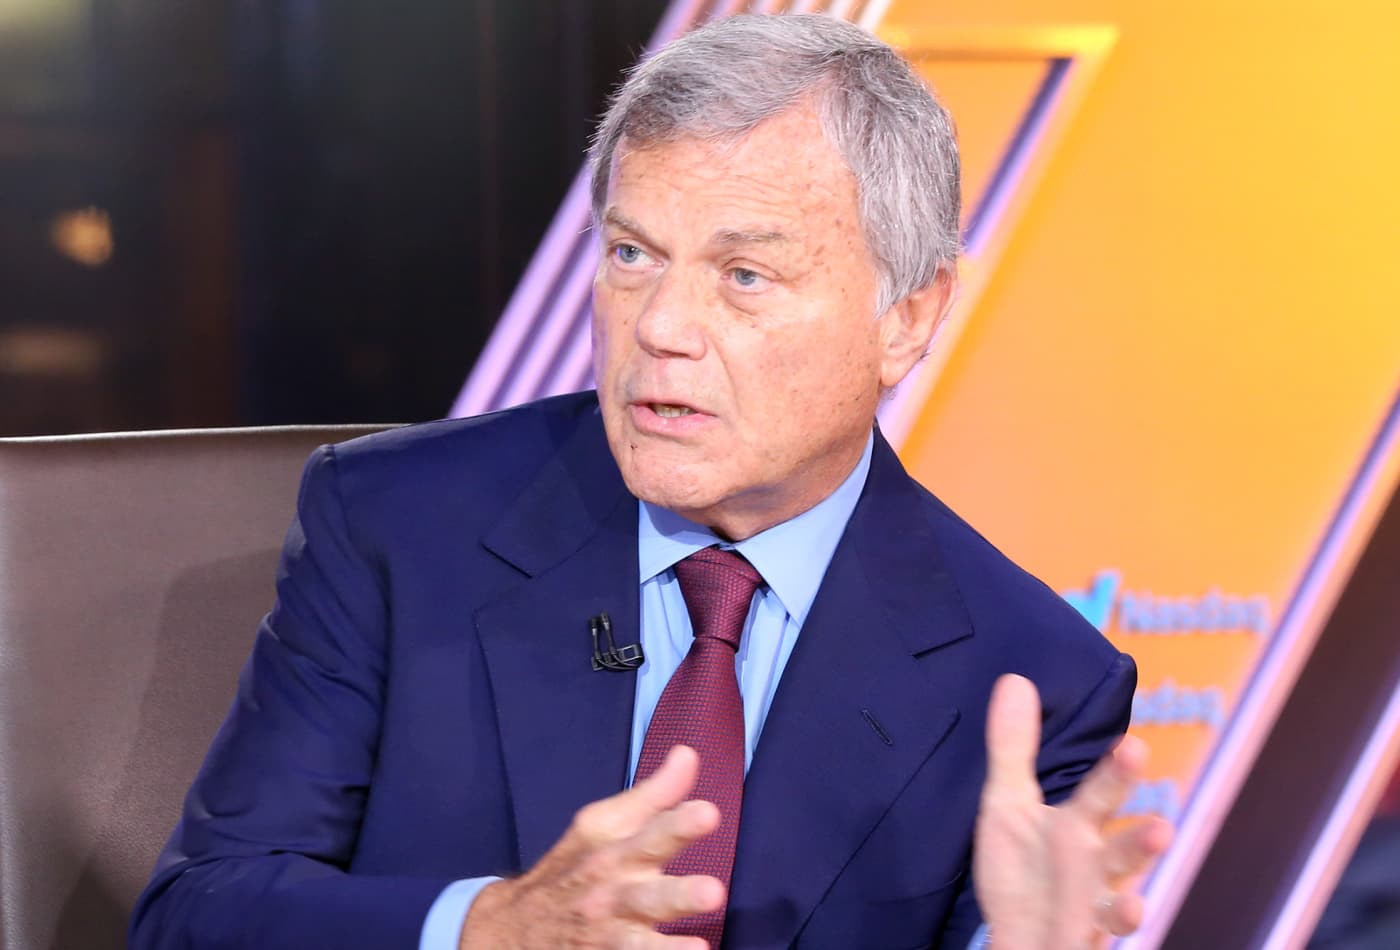 A 'fearsome seven' of major tech firms are changing the media industry forever, WPP CEO Martin Sorrell says